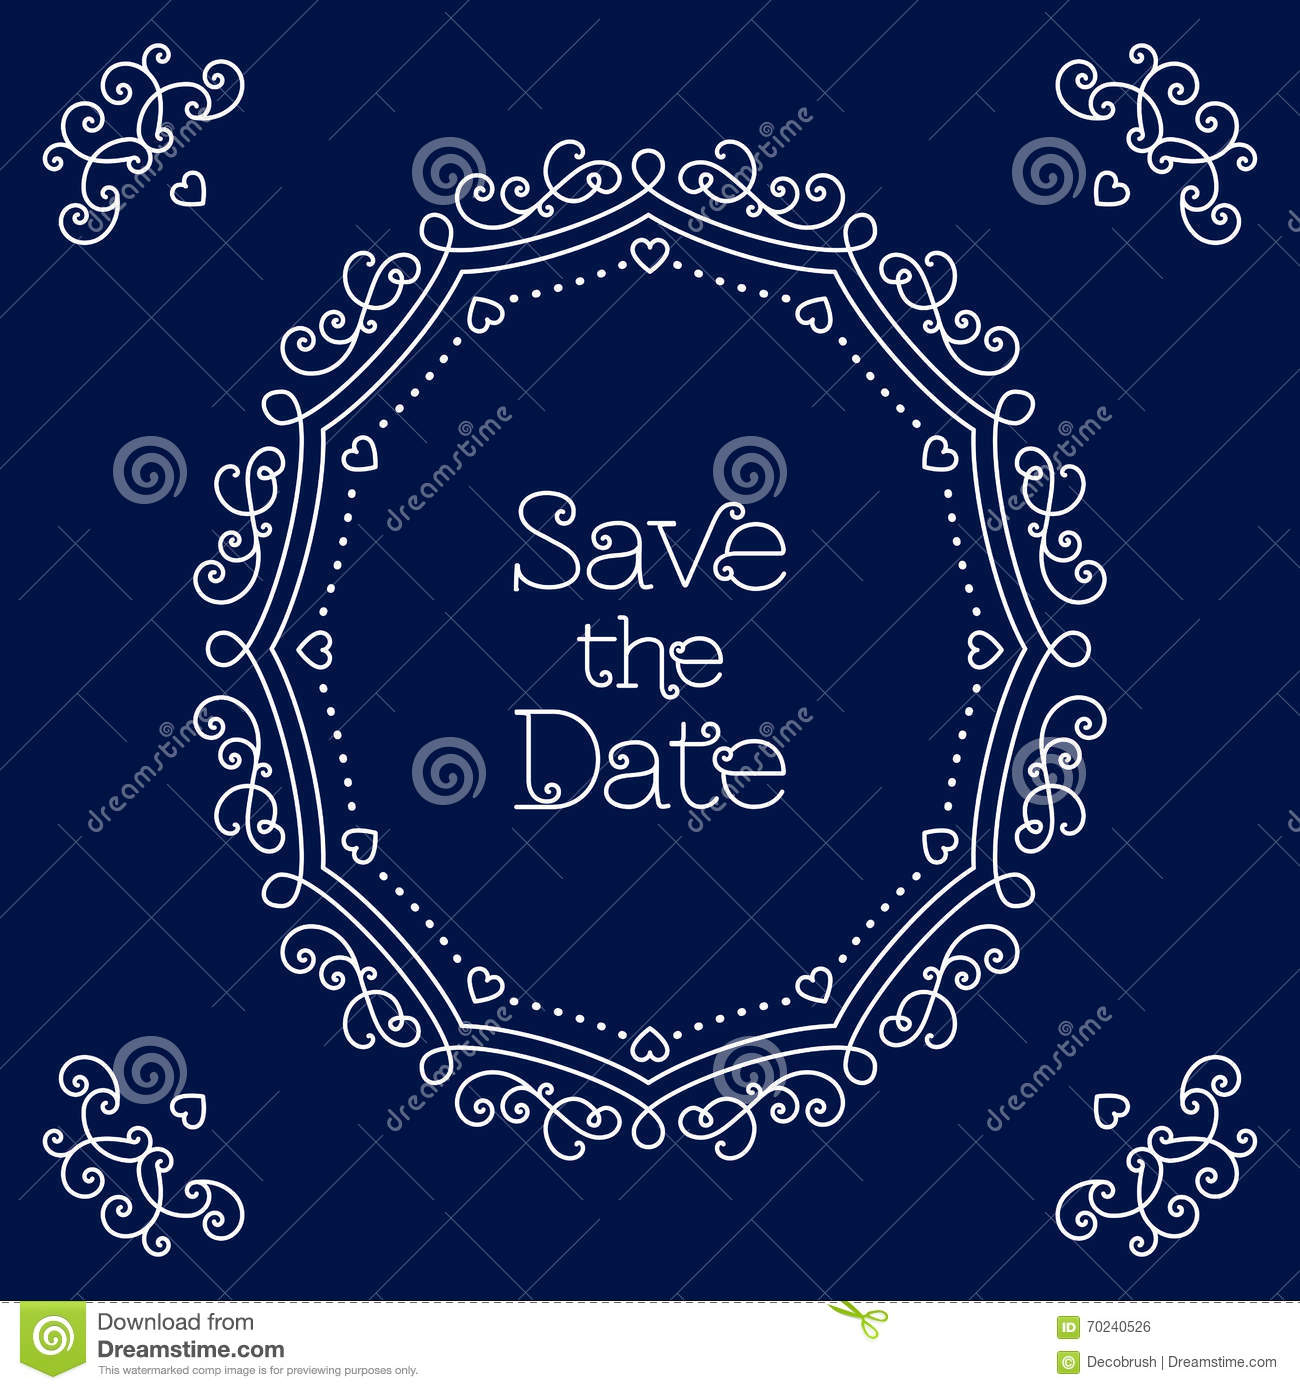 save the date card line art wedding design template